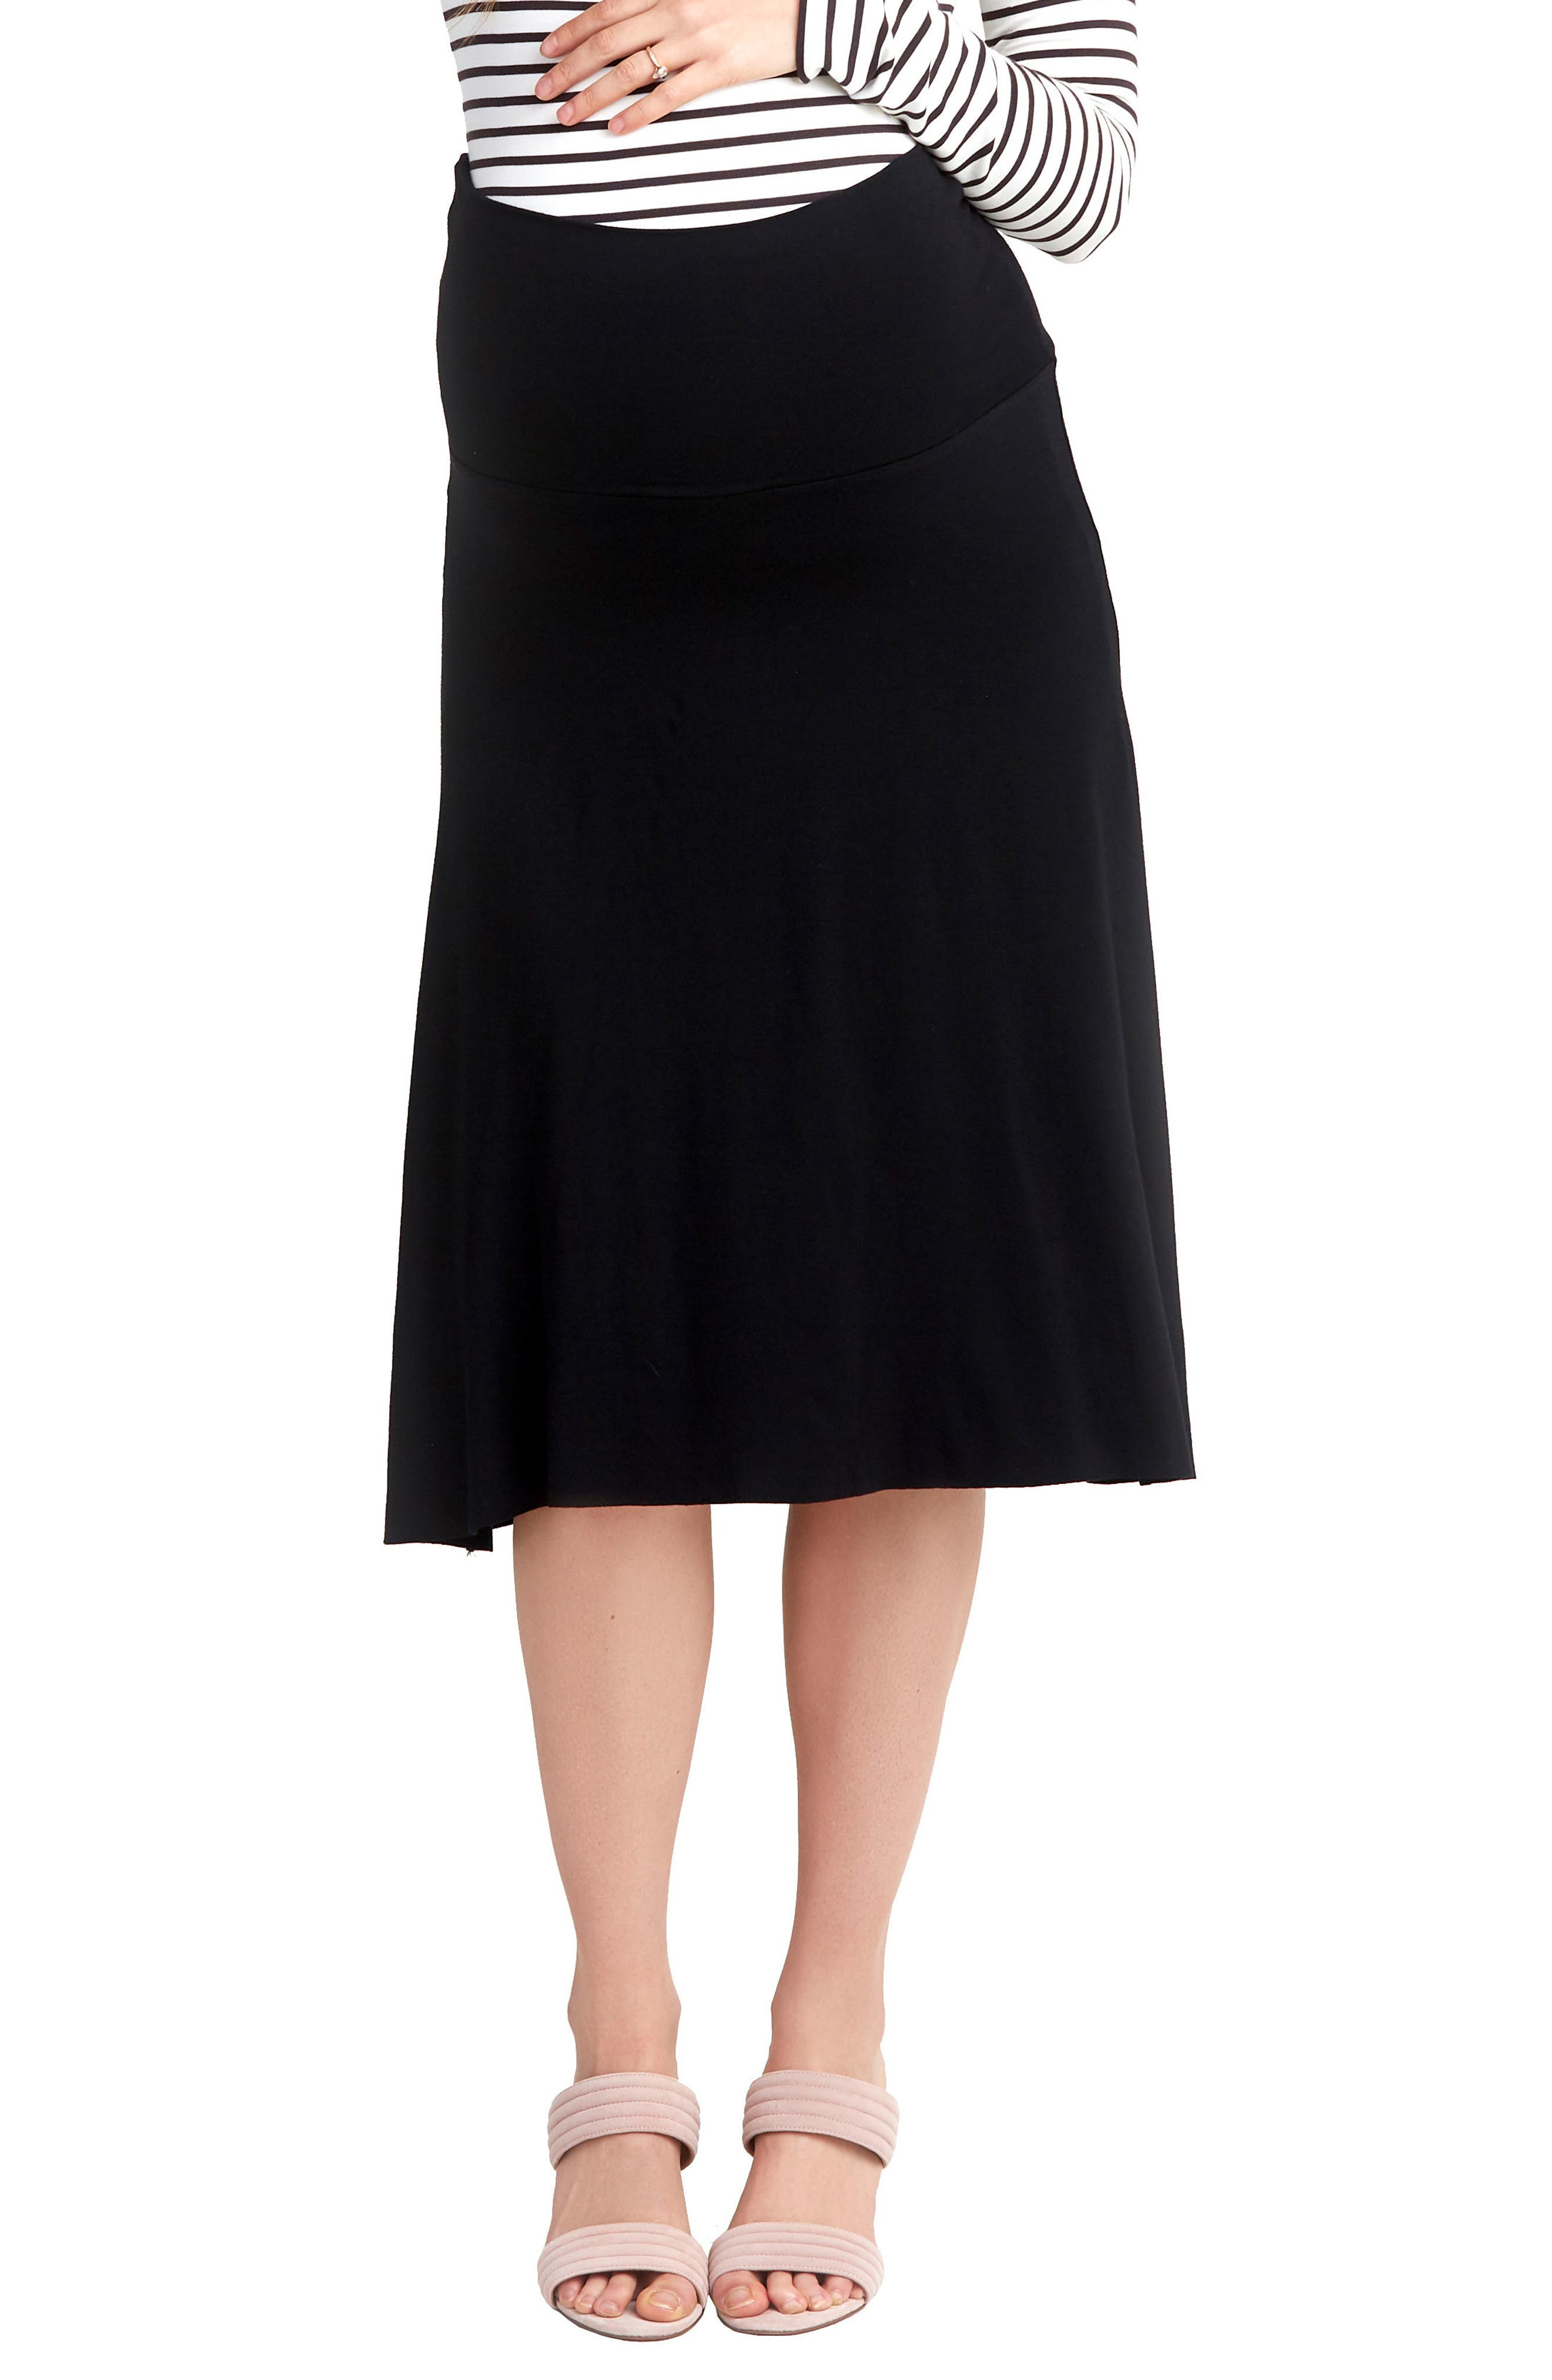 NOM Nola Maternity Skirt,                             Main thumbnail 1, color,                             BLACK